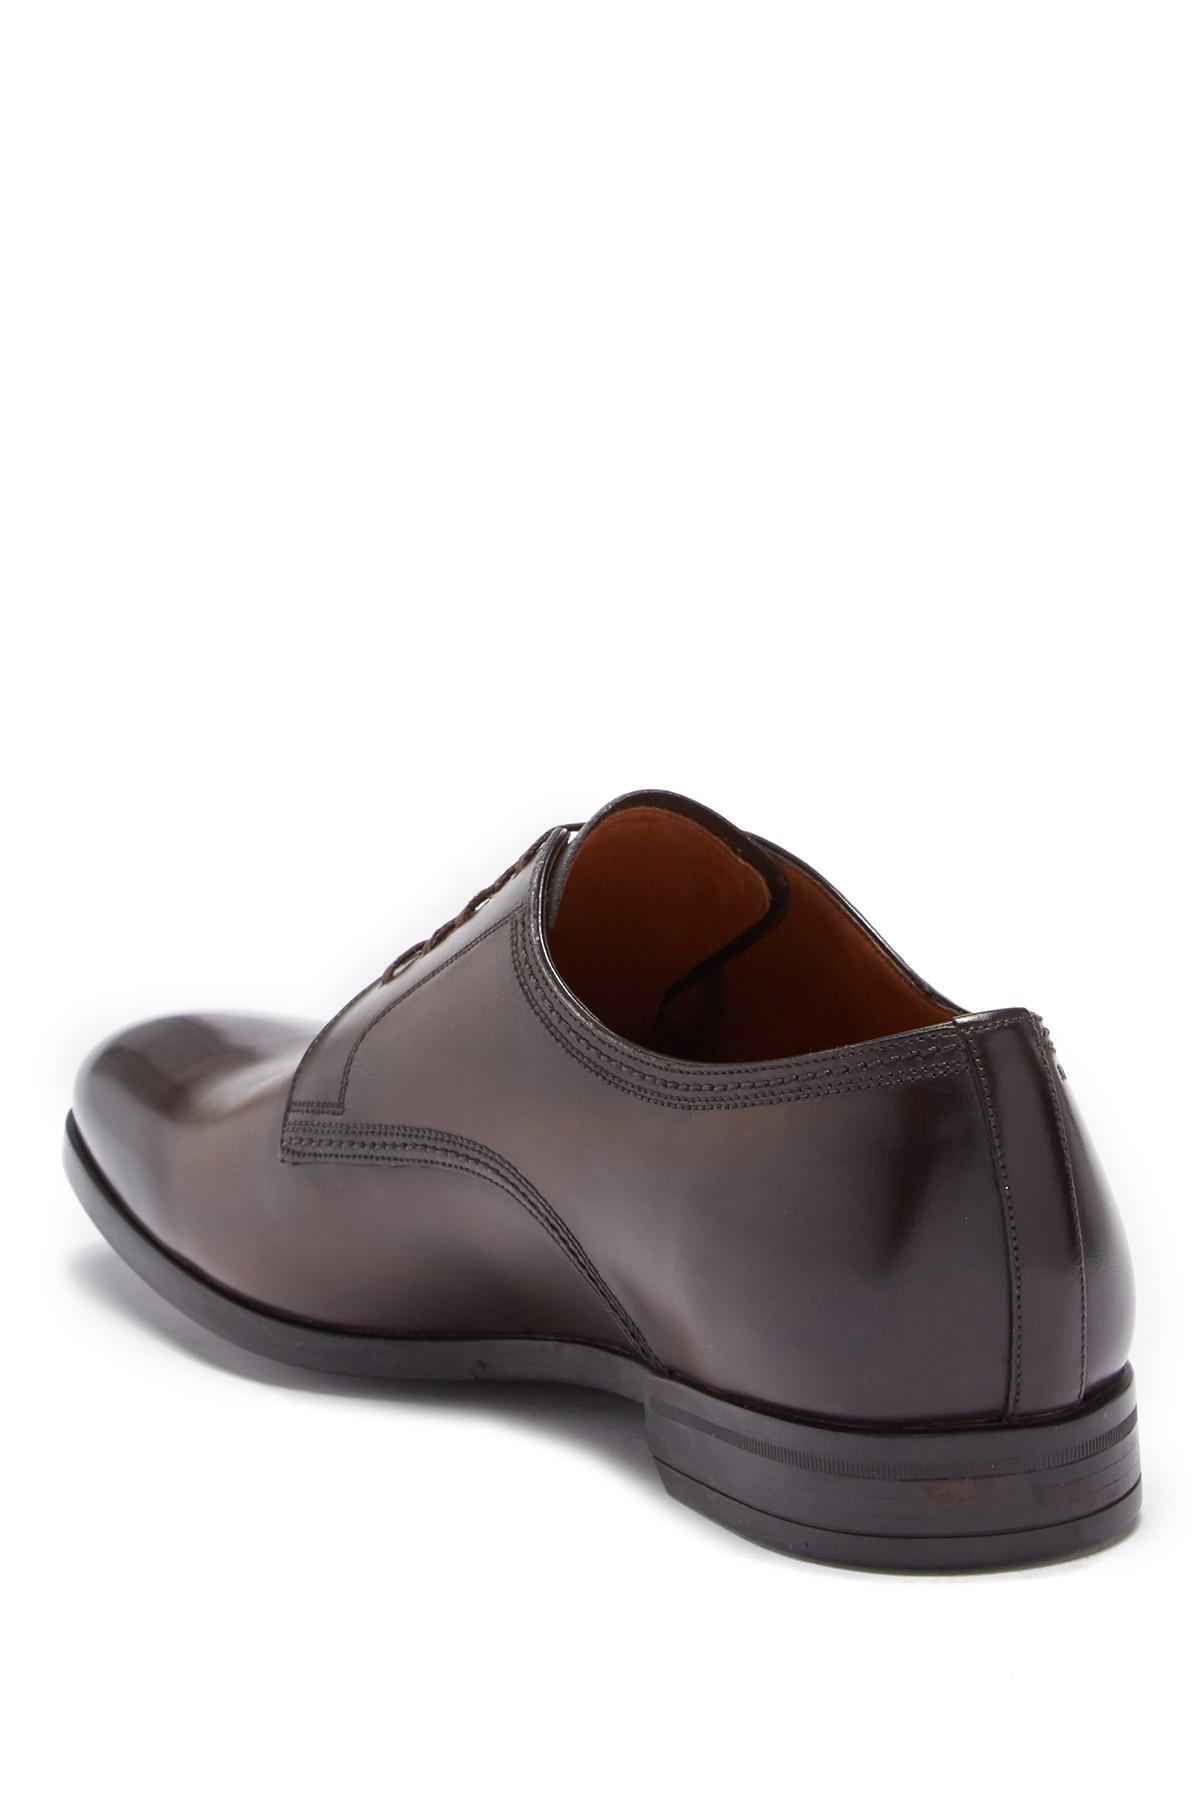 c66cbe3533e Lyst - Bally Latour Leather Derby in Brown for Men